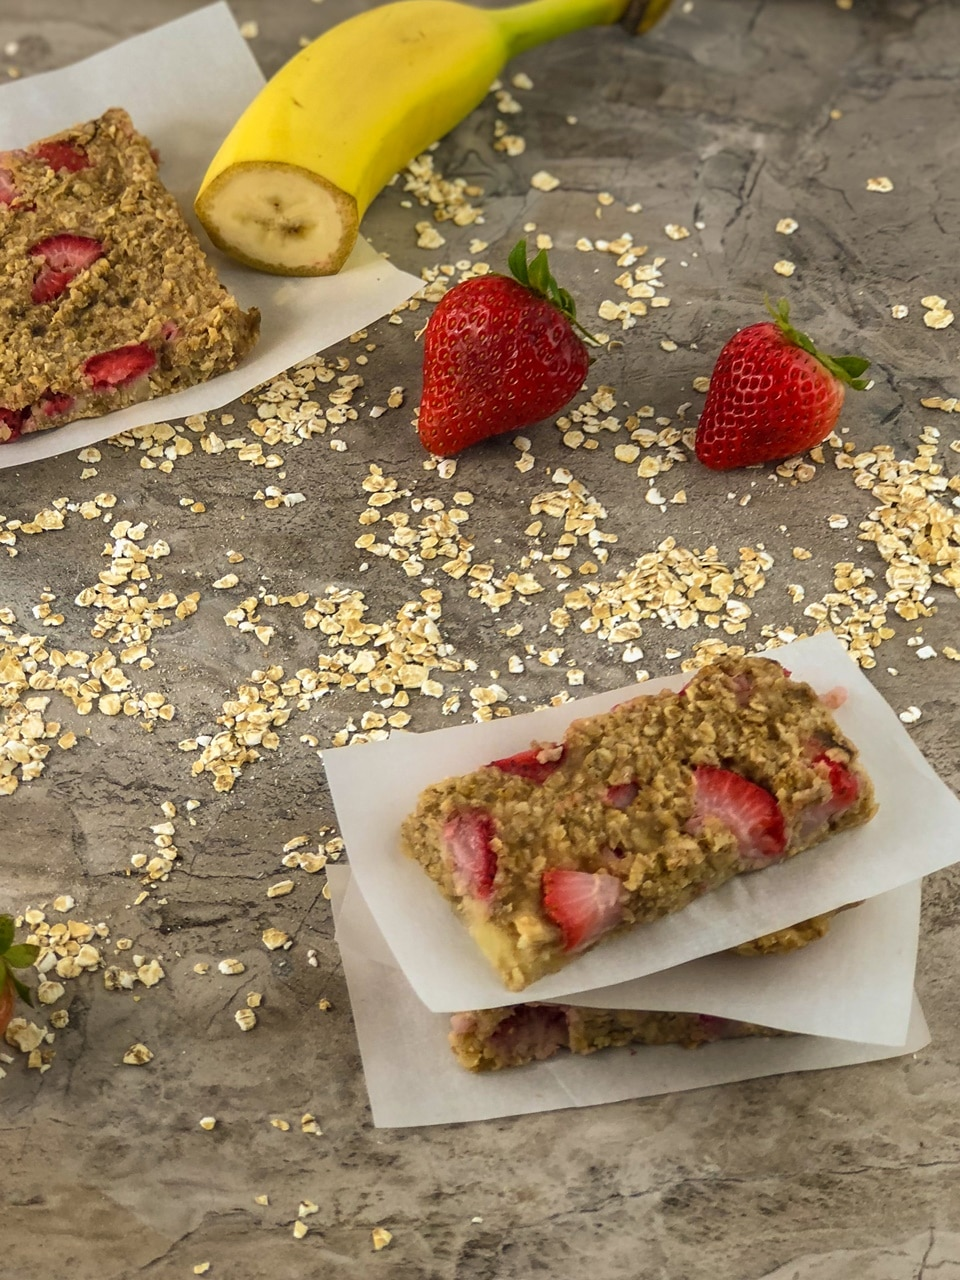 Image of Oatmeal Strawberry bars with a bannana in the background and oatmeal on the table.